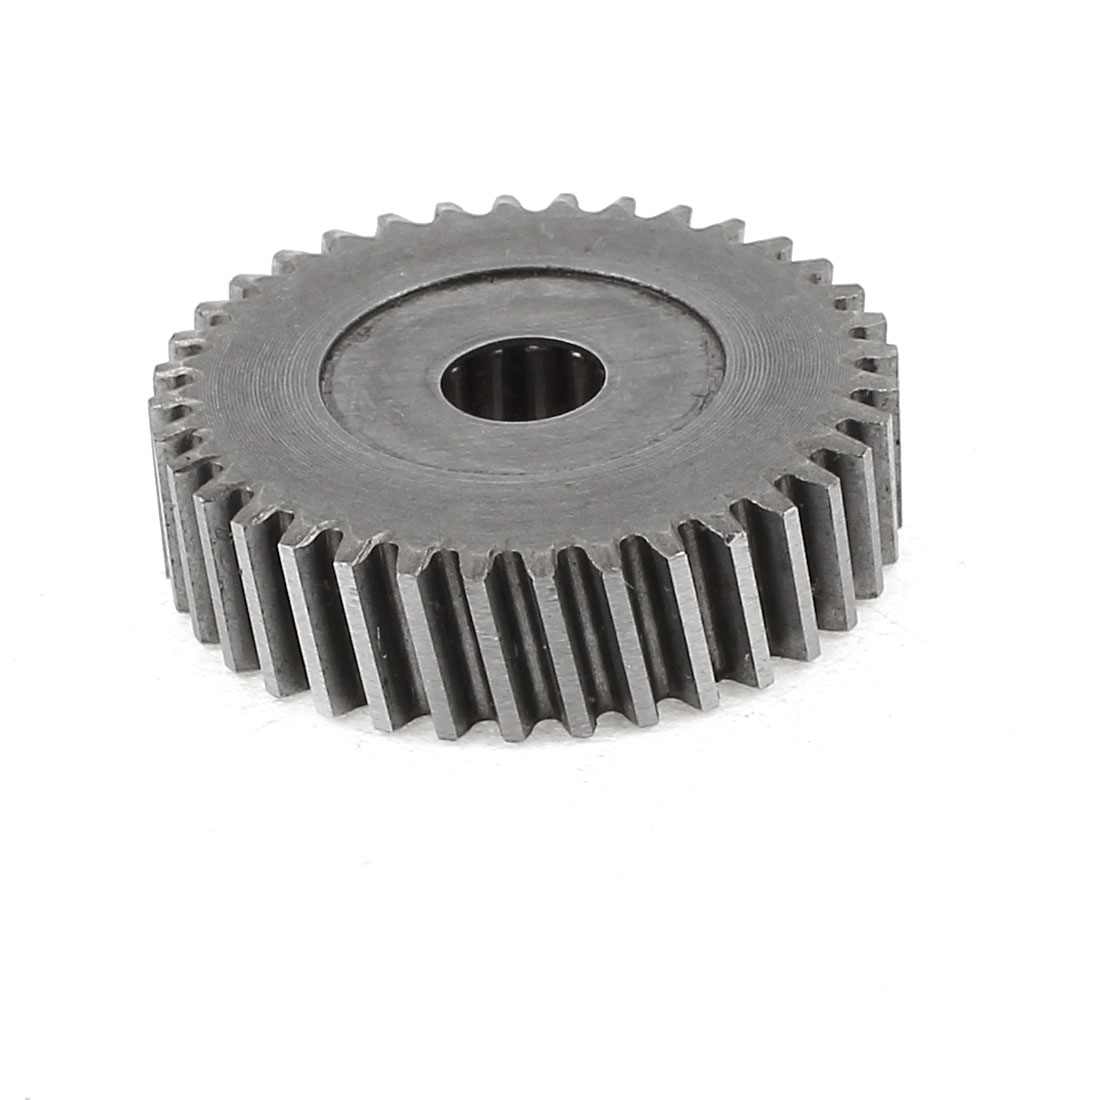 Motor Replacement 8mm Hole Dia 35 Teeth 1.5mm Pitch Metal Spur Gear